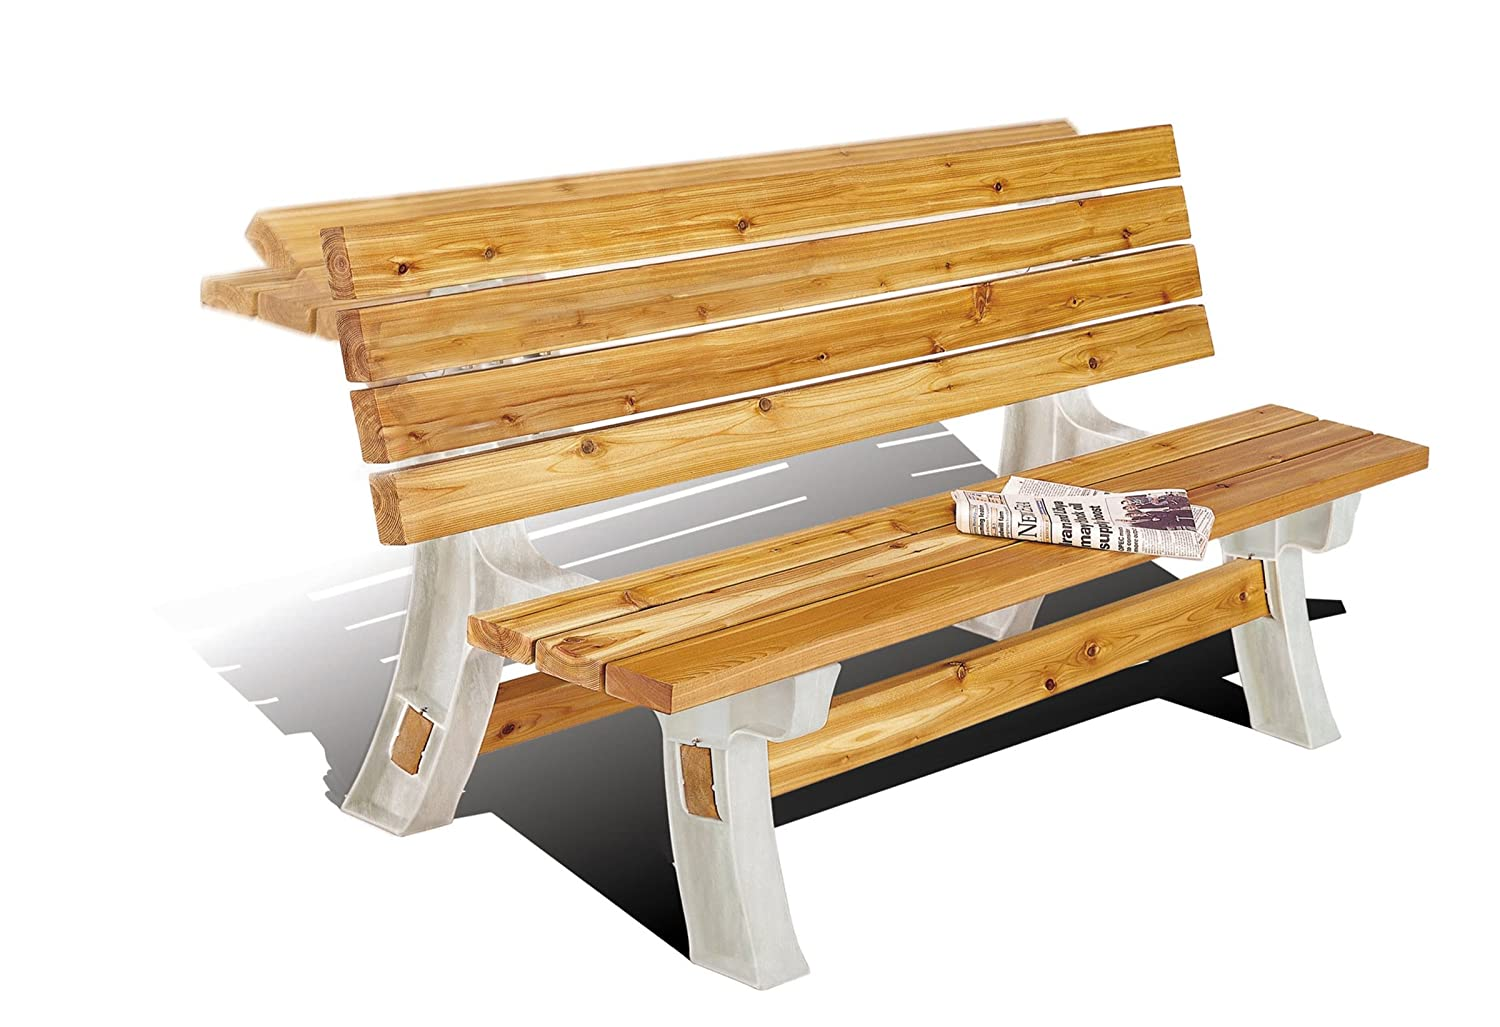 Wooden Table Bench - Flip Top Bench - any size - just add your CLS 2x4 Timber Hopkins Manufacturing 90110ONLMI